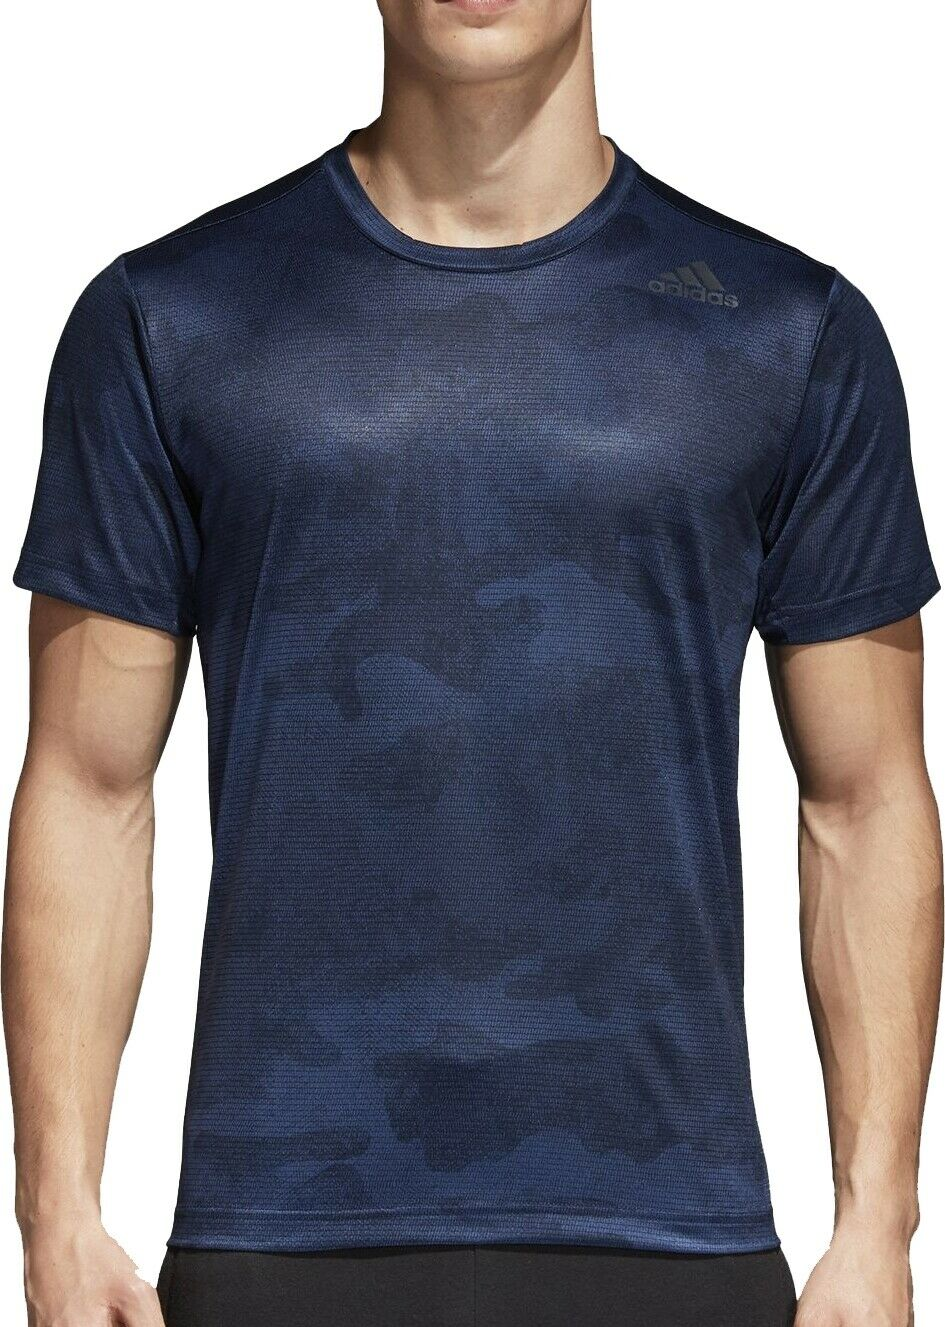 Adidas FreeLift  ClimaCool Graphic Short Sleeve Mens Training Top - bluee  wholesape cheap